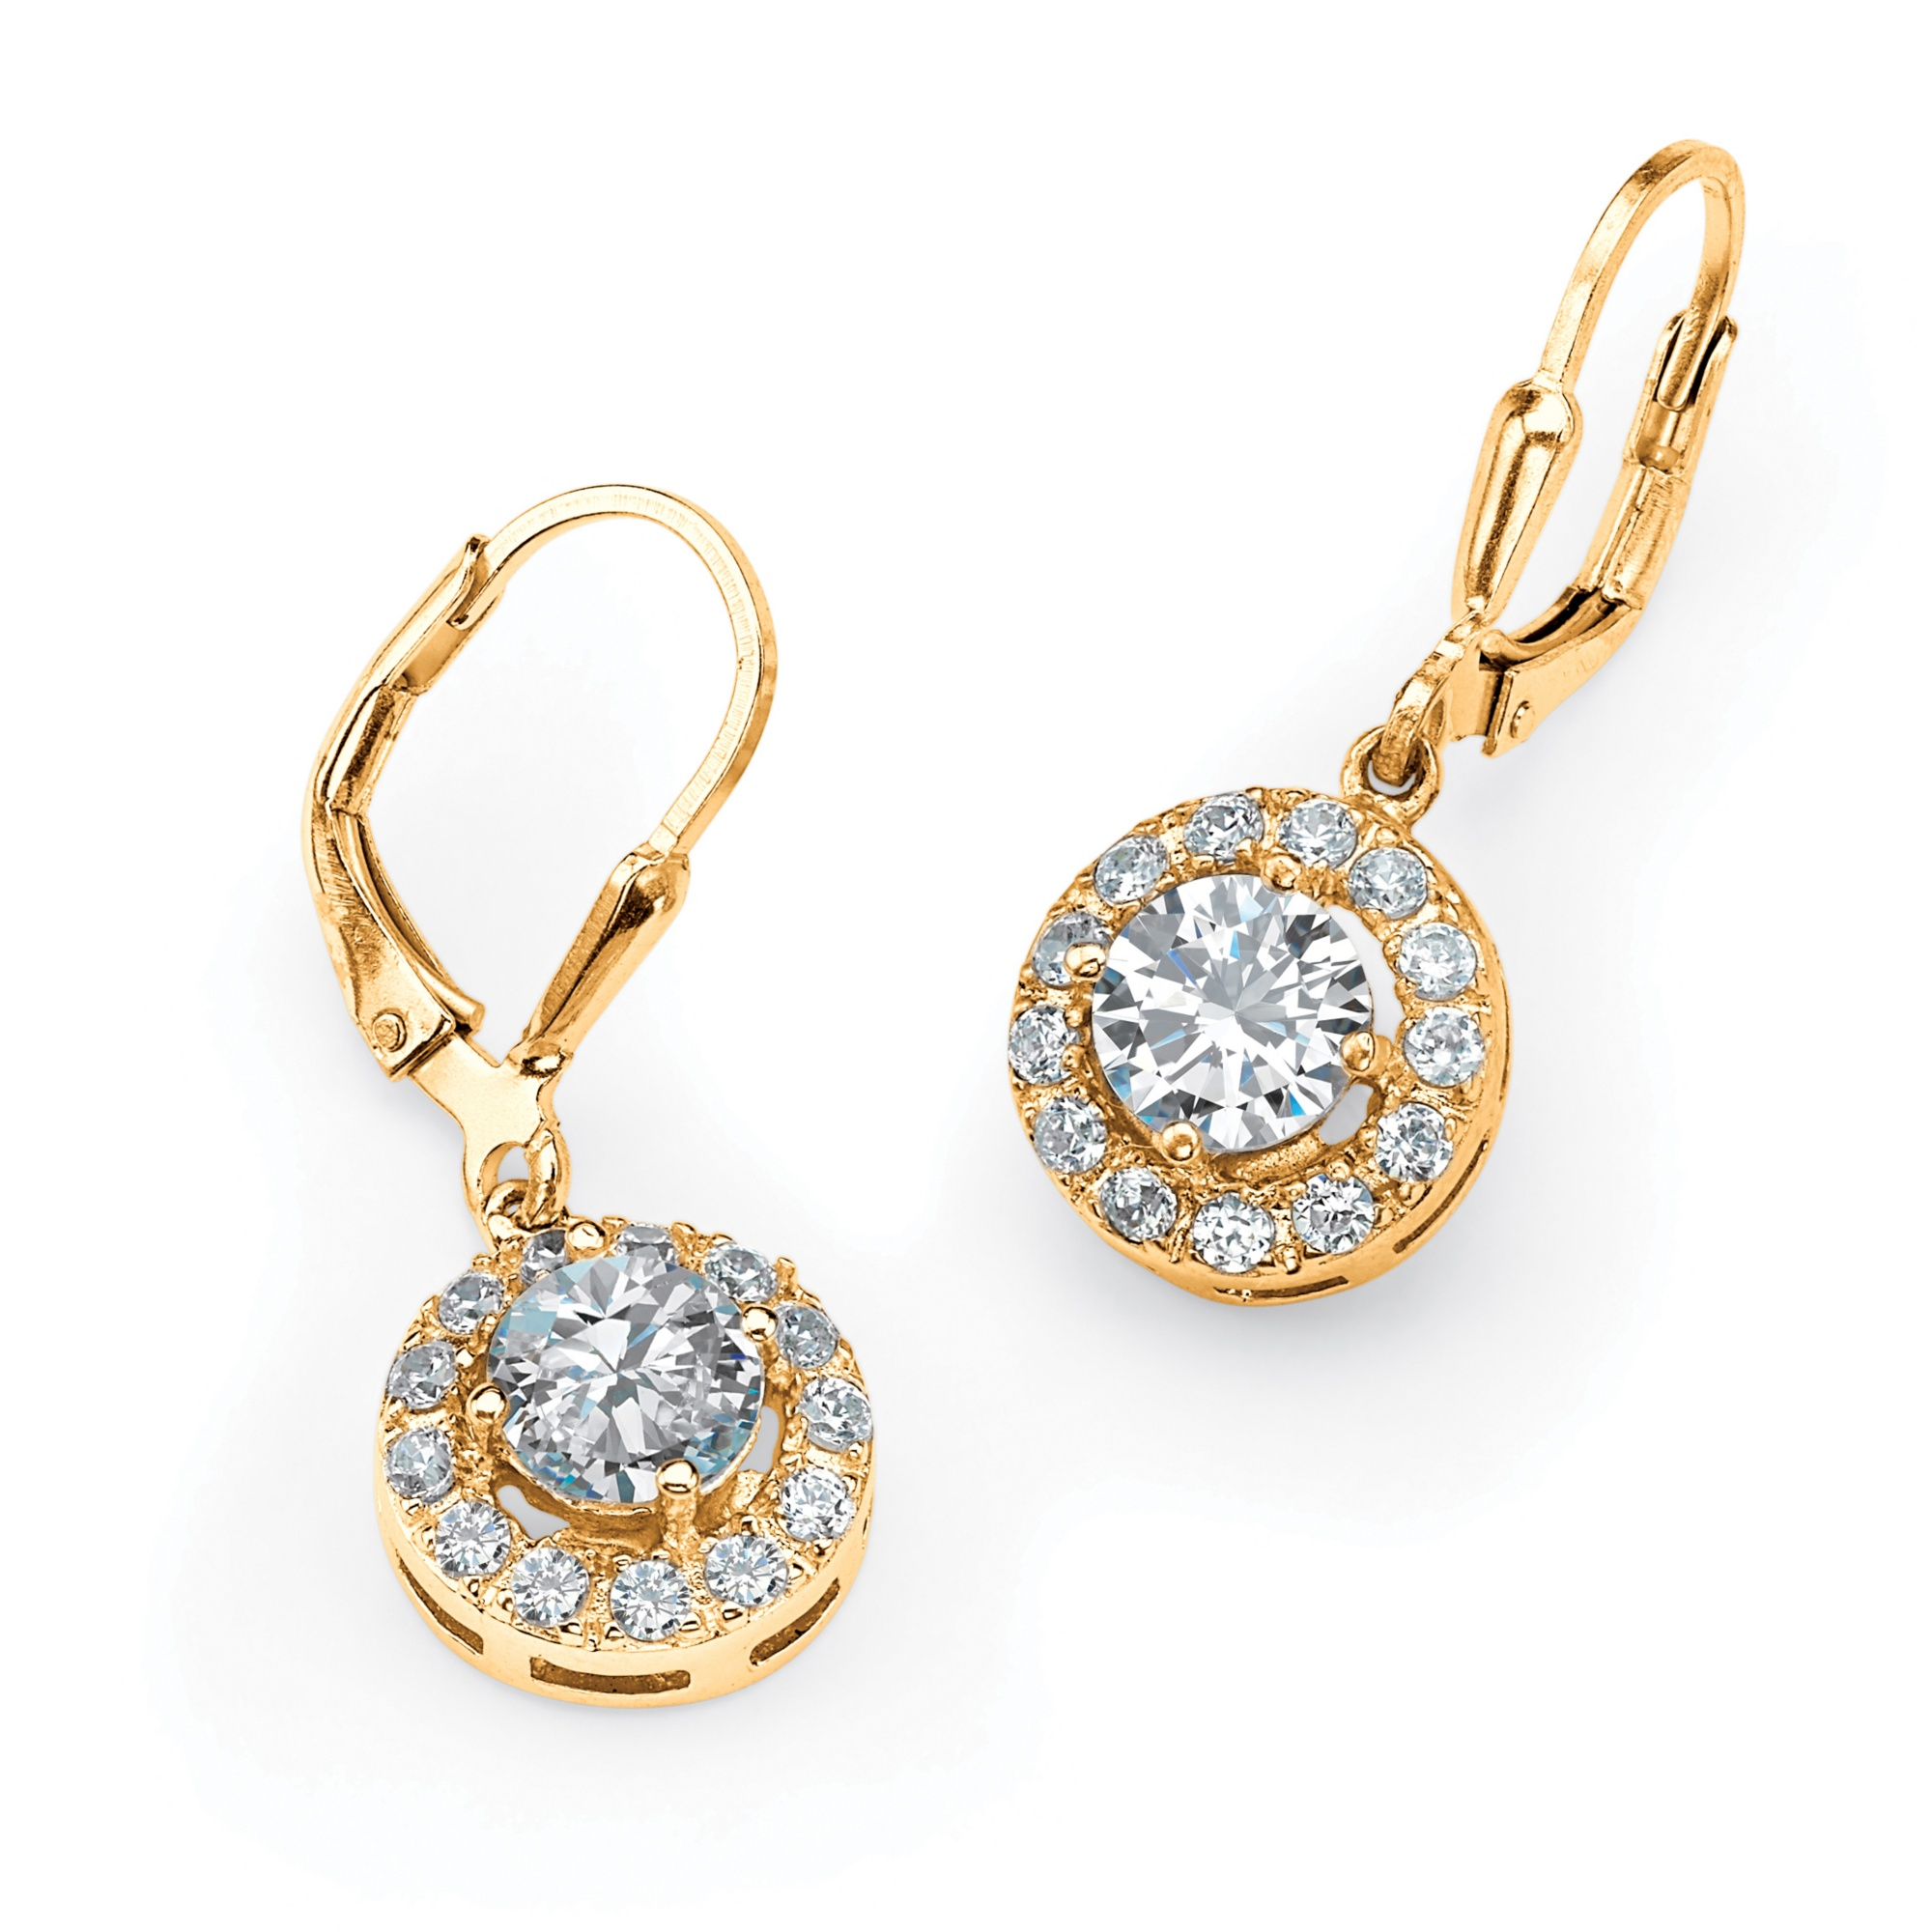 2.34 TCW Round Cubic Zirconia Halo Drop Earrings in 18k Gold over Sterling Silver